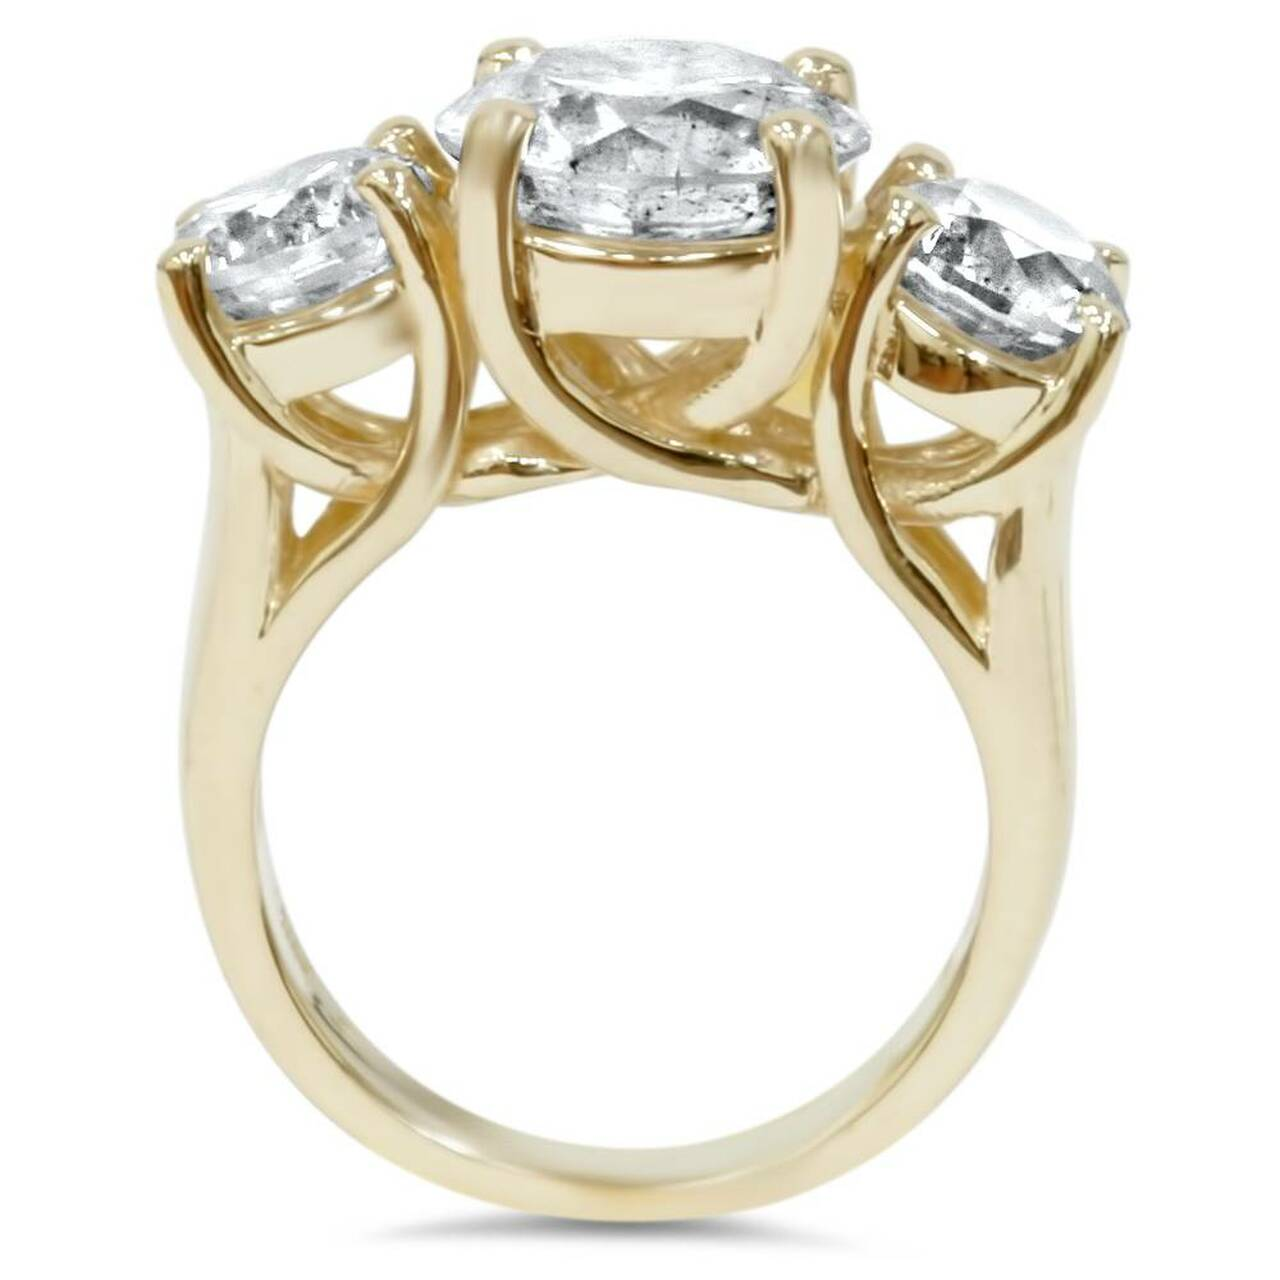 0609407860 ... 3 Stone Round Solitaire Engagement Ring 14K Yellow Gold (H-I, I1-I2).  ENG1913Y.  https://d3d71ba2asa5oz.cloudfront.net/53000589/images/eng1913ylarge1.